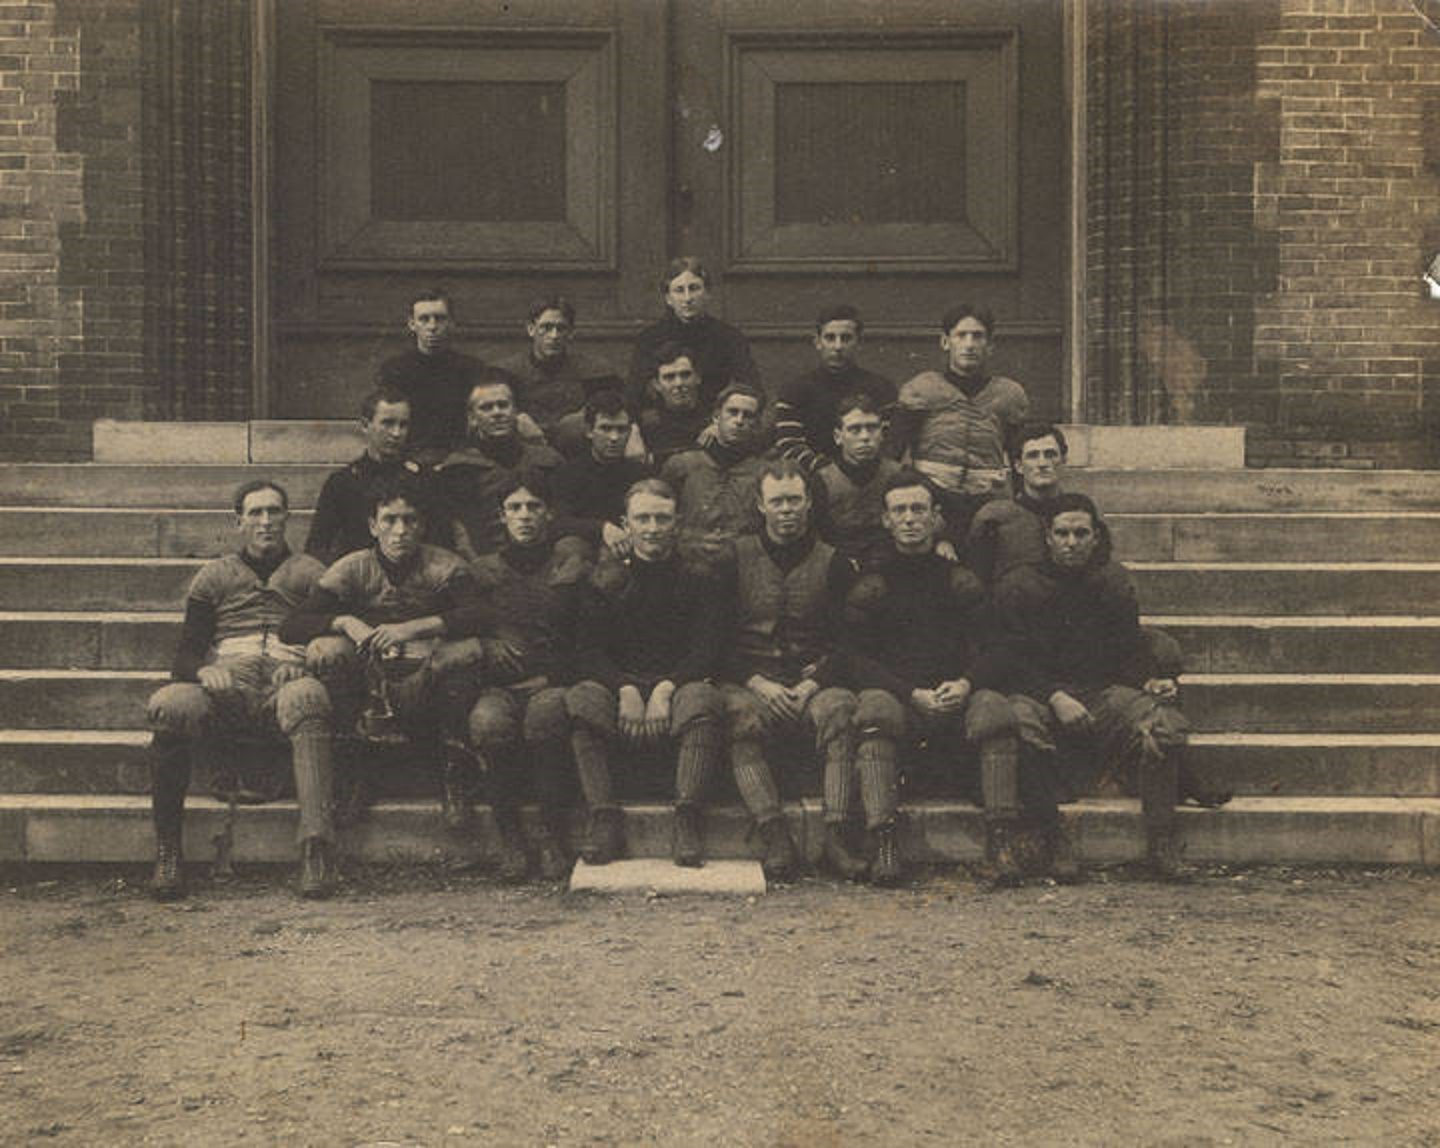 Early group pictures from the University of Alabama includes football team of 1901!